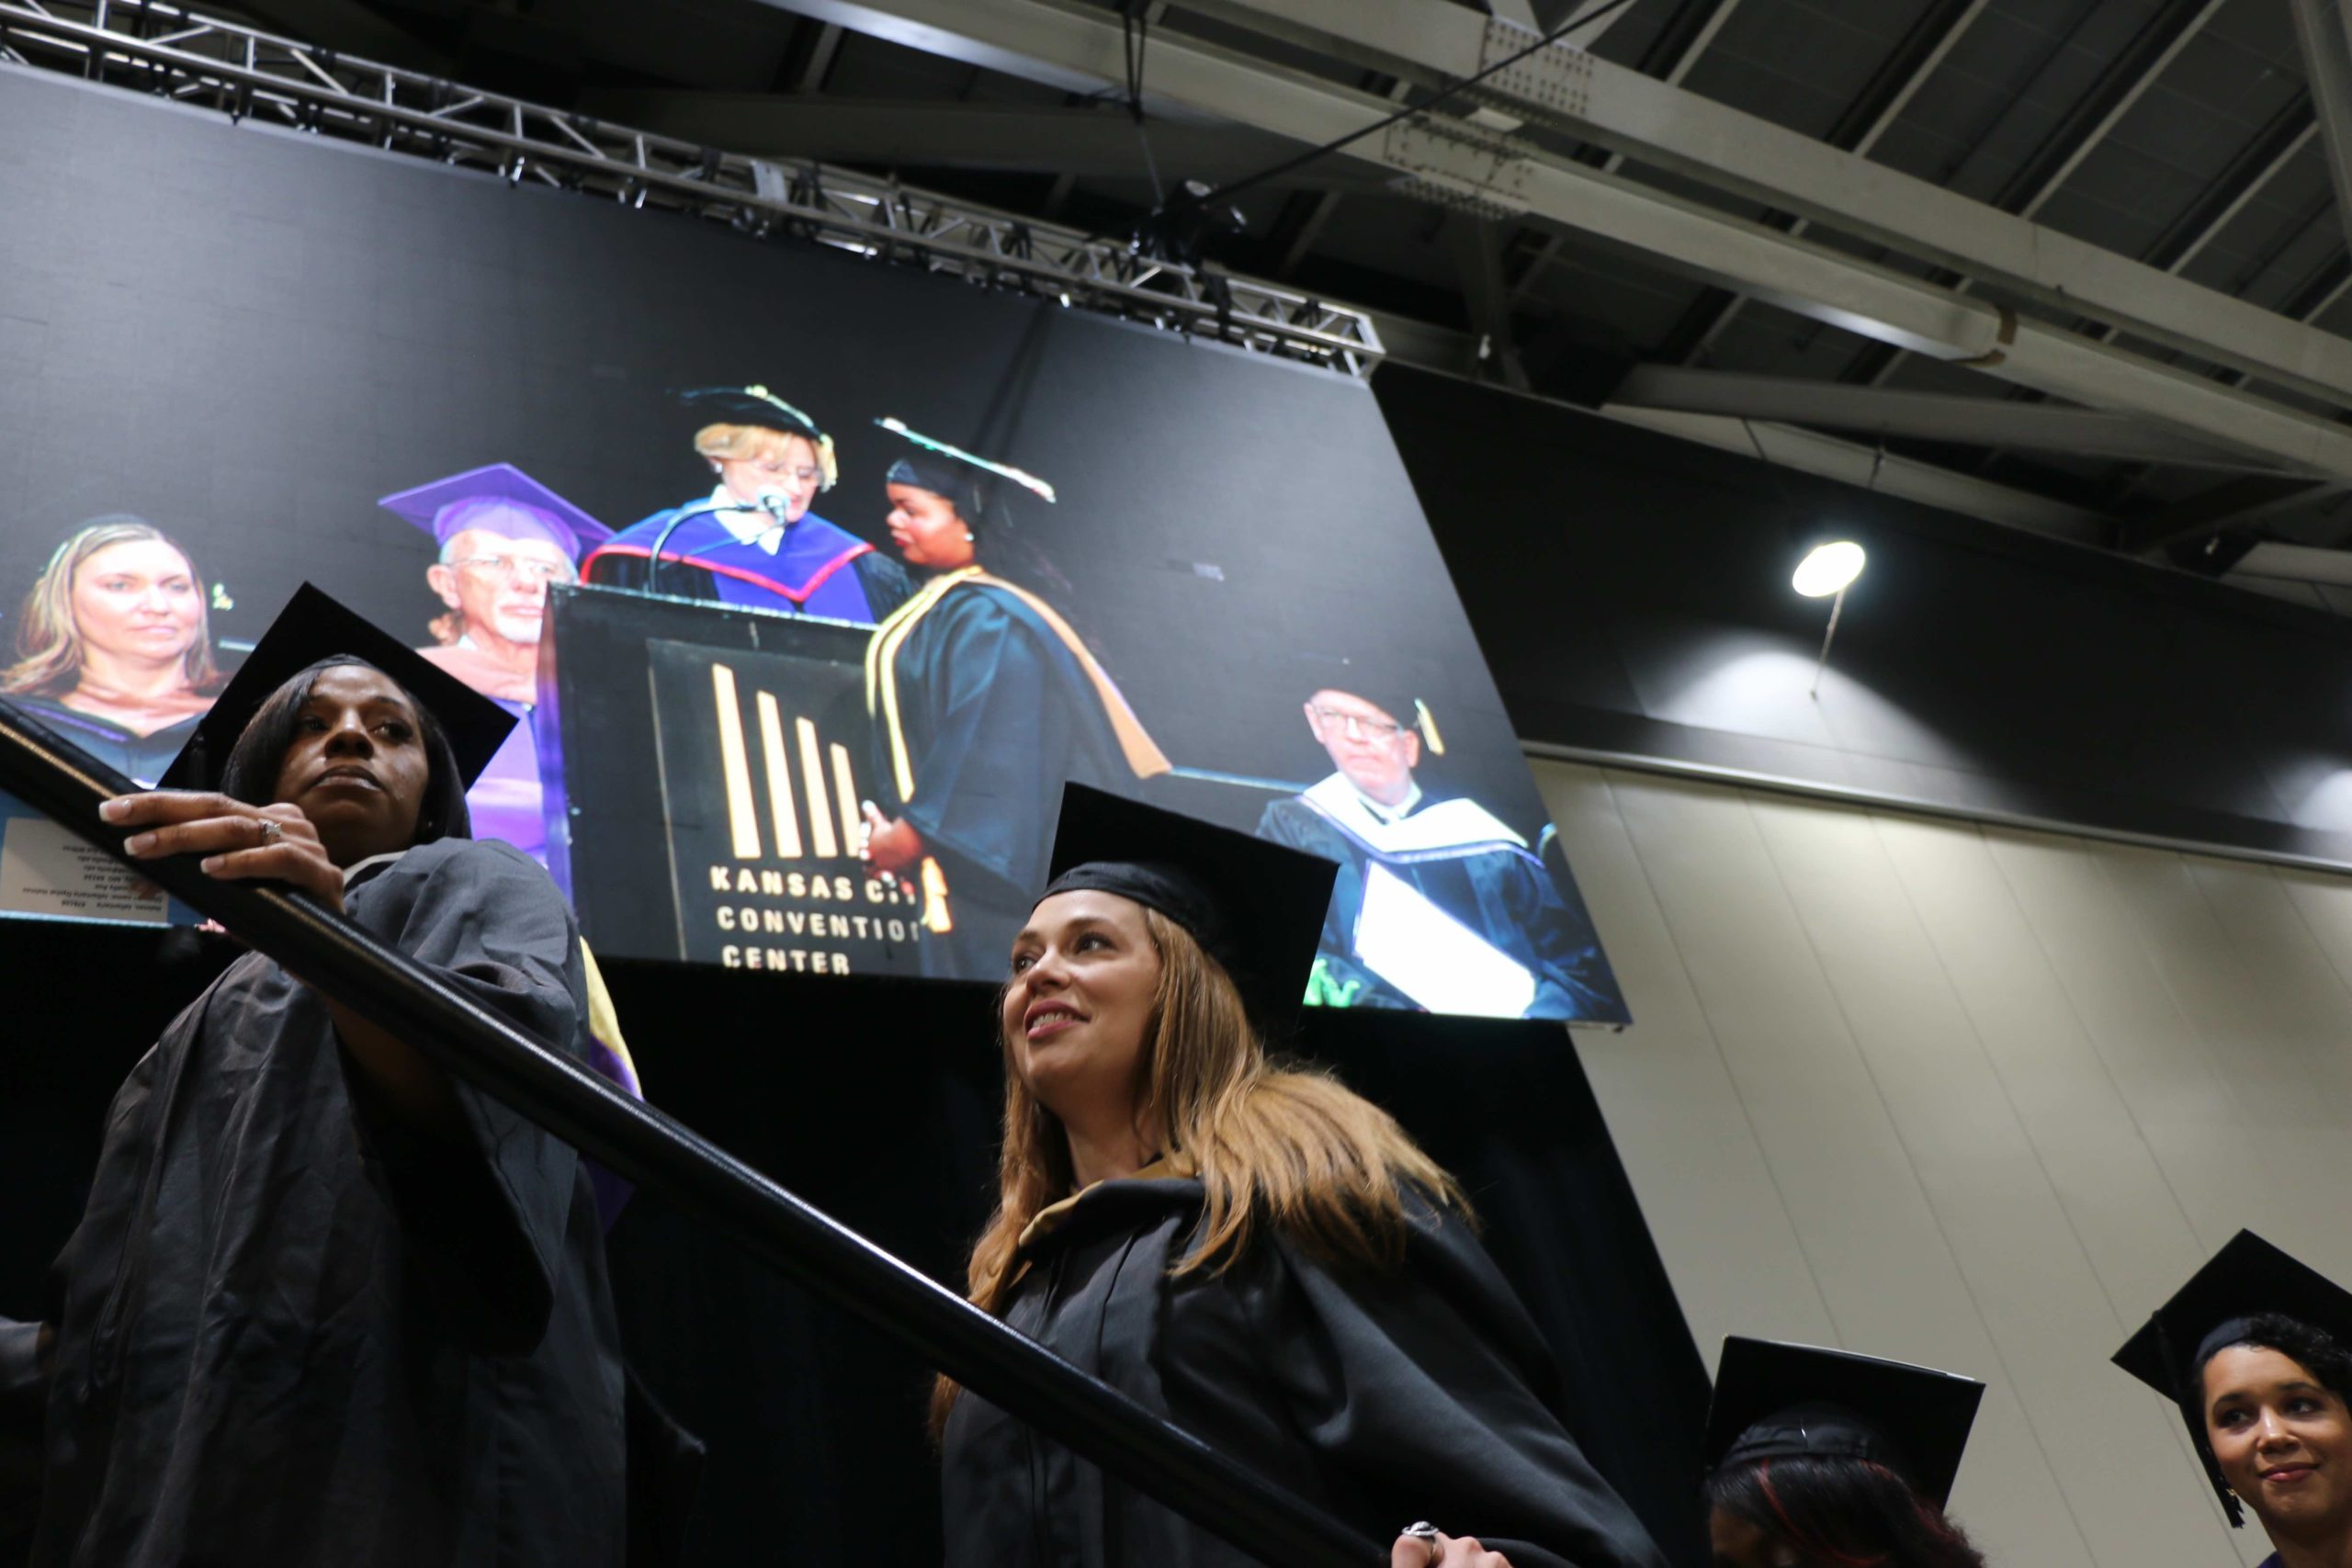 Two female students head up the stairs to the graduation stage wearing their caps and gowns